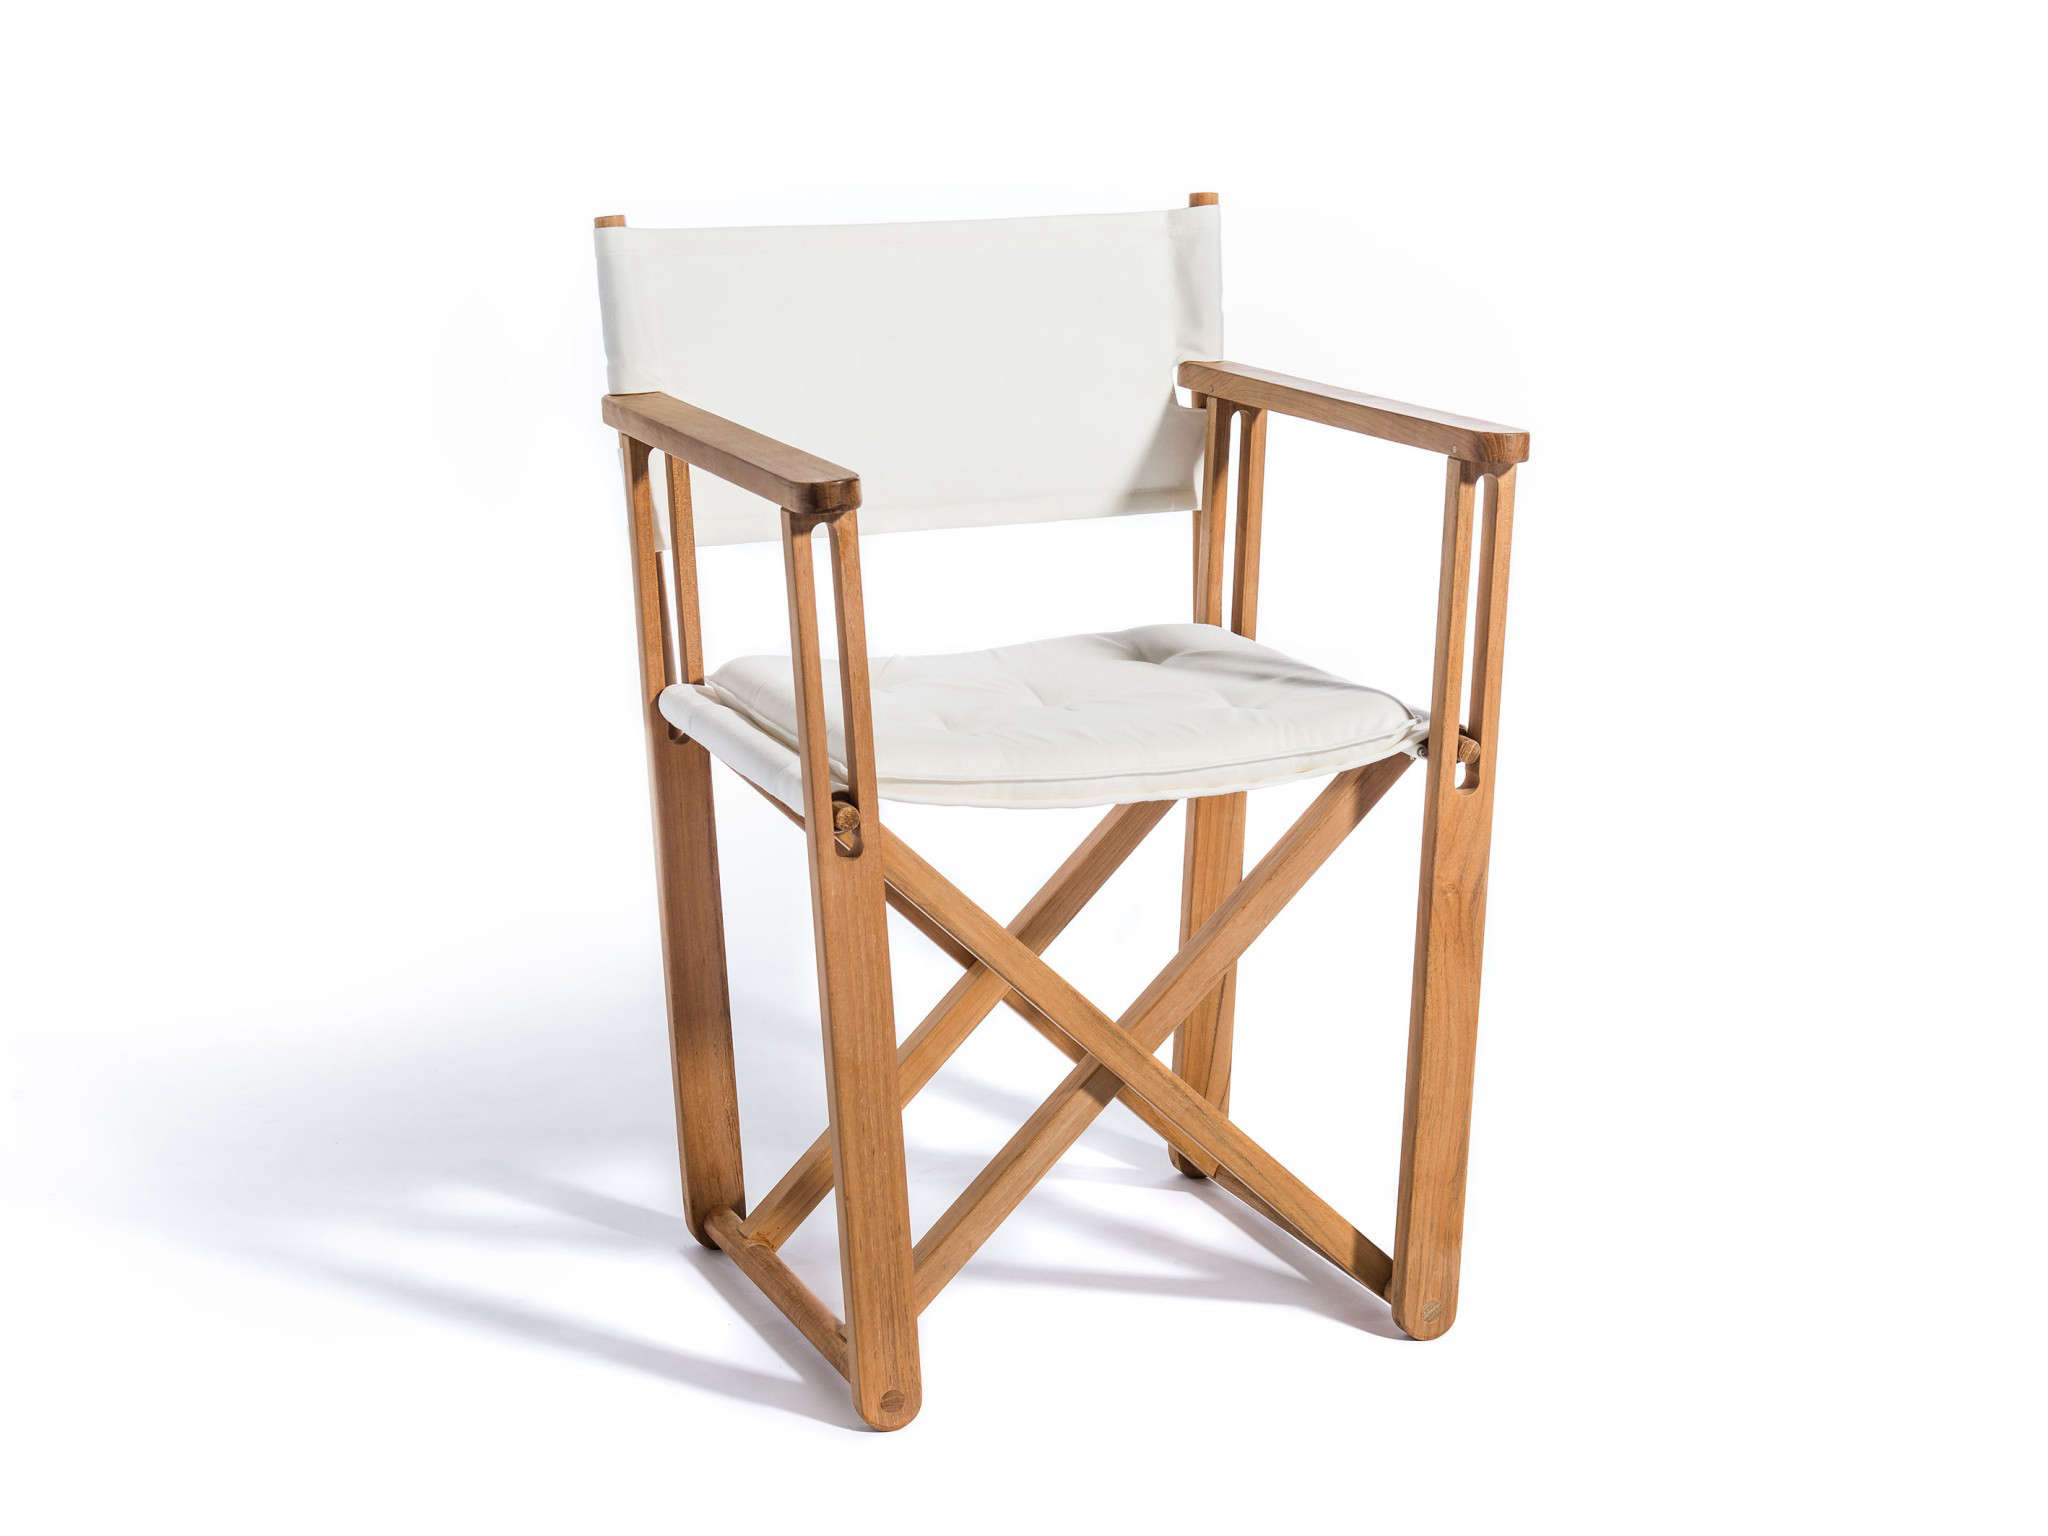 5 Favorites The New Canvas and Wood Folding Chair High to Low